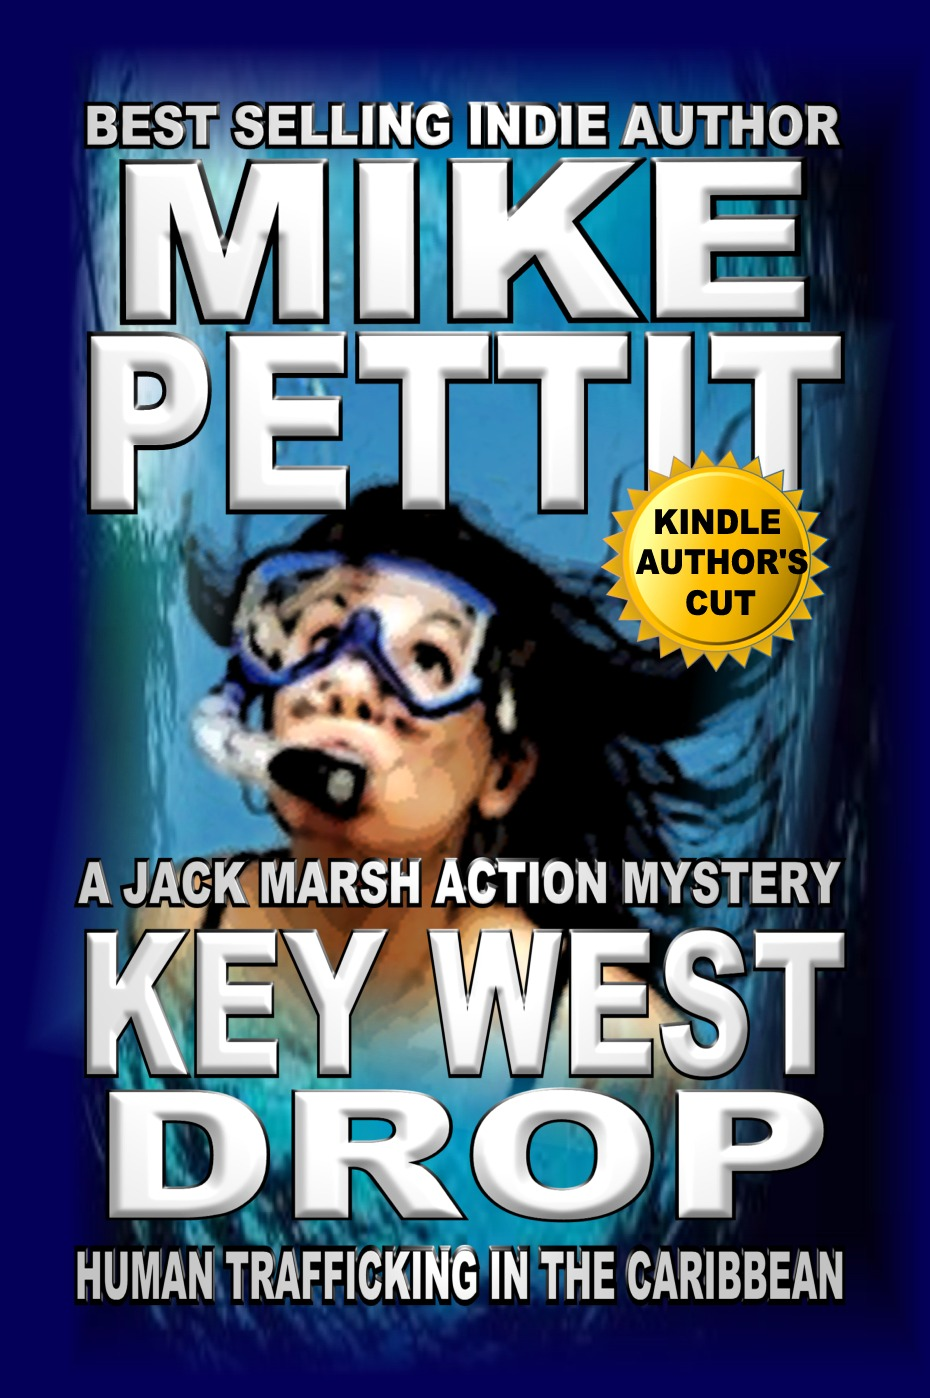 KEY WEST DROP